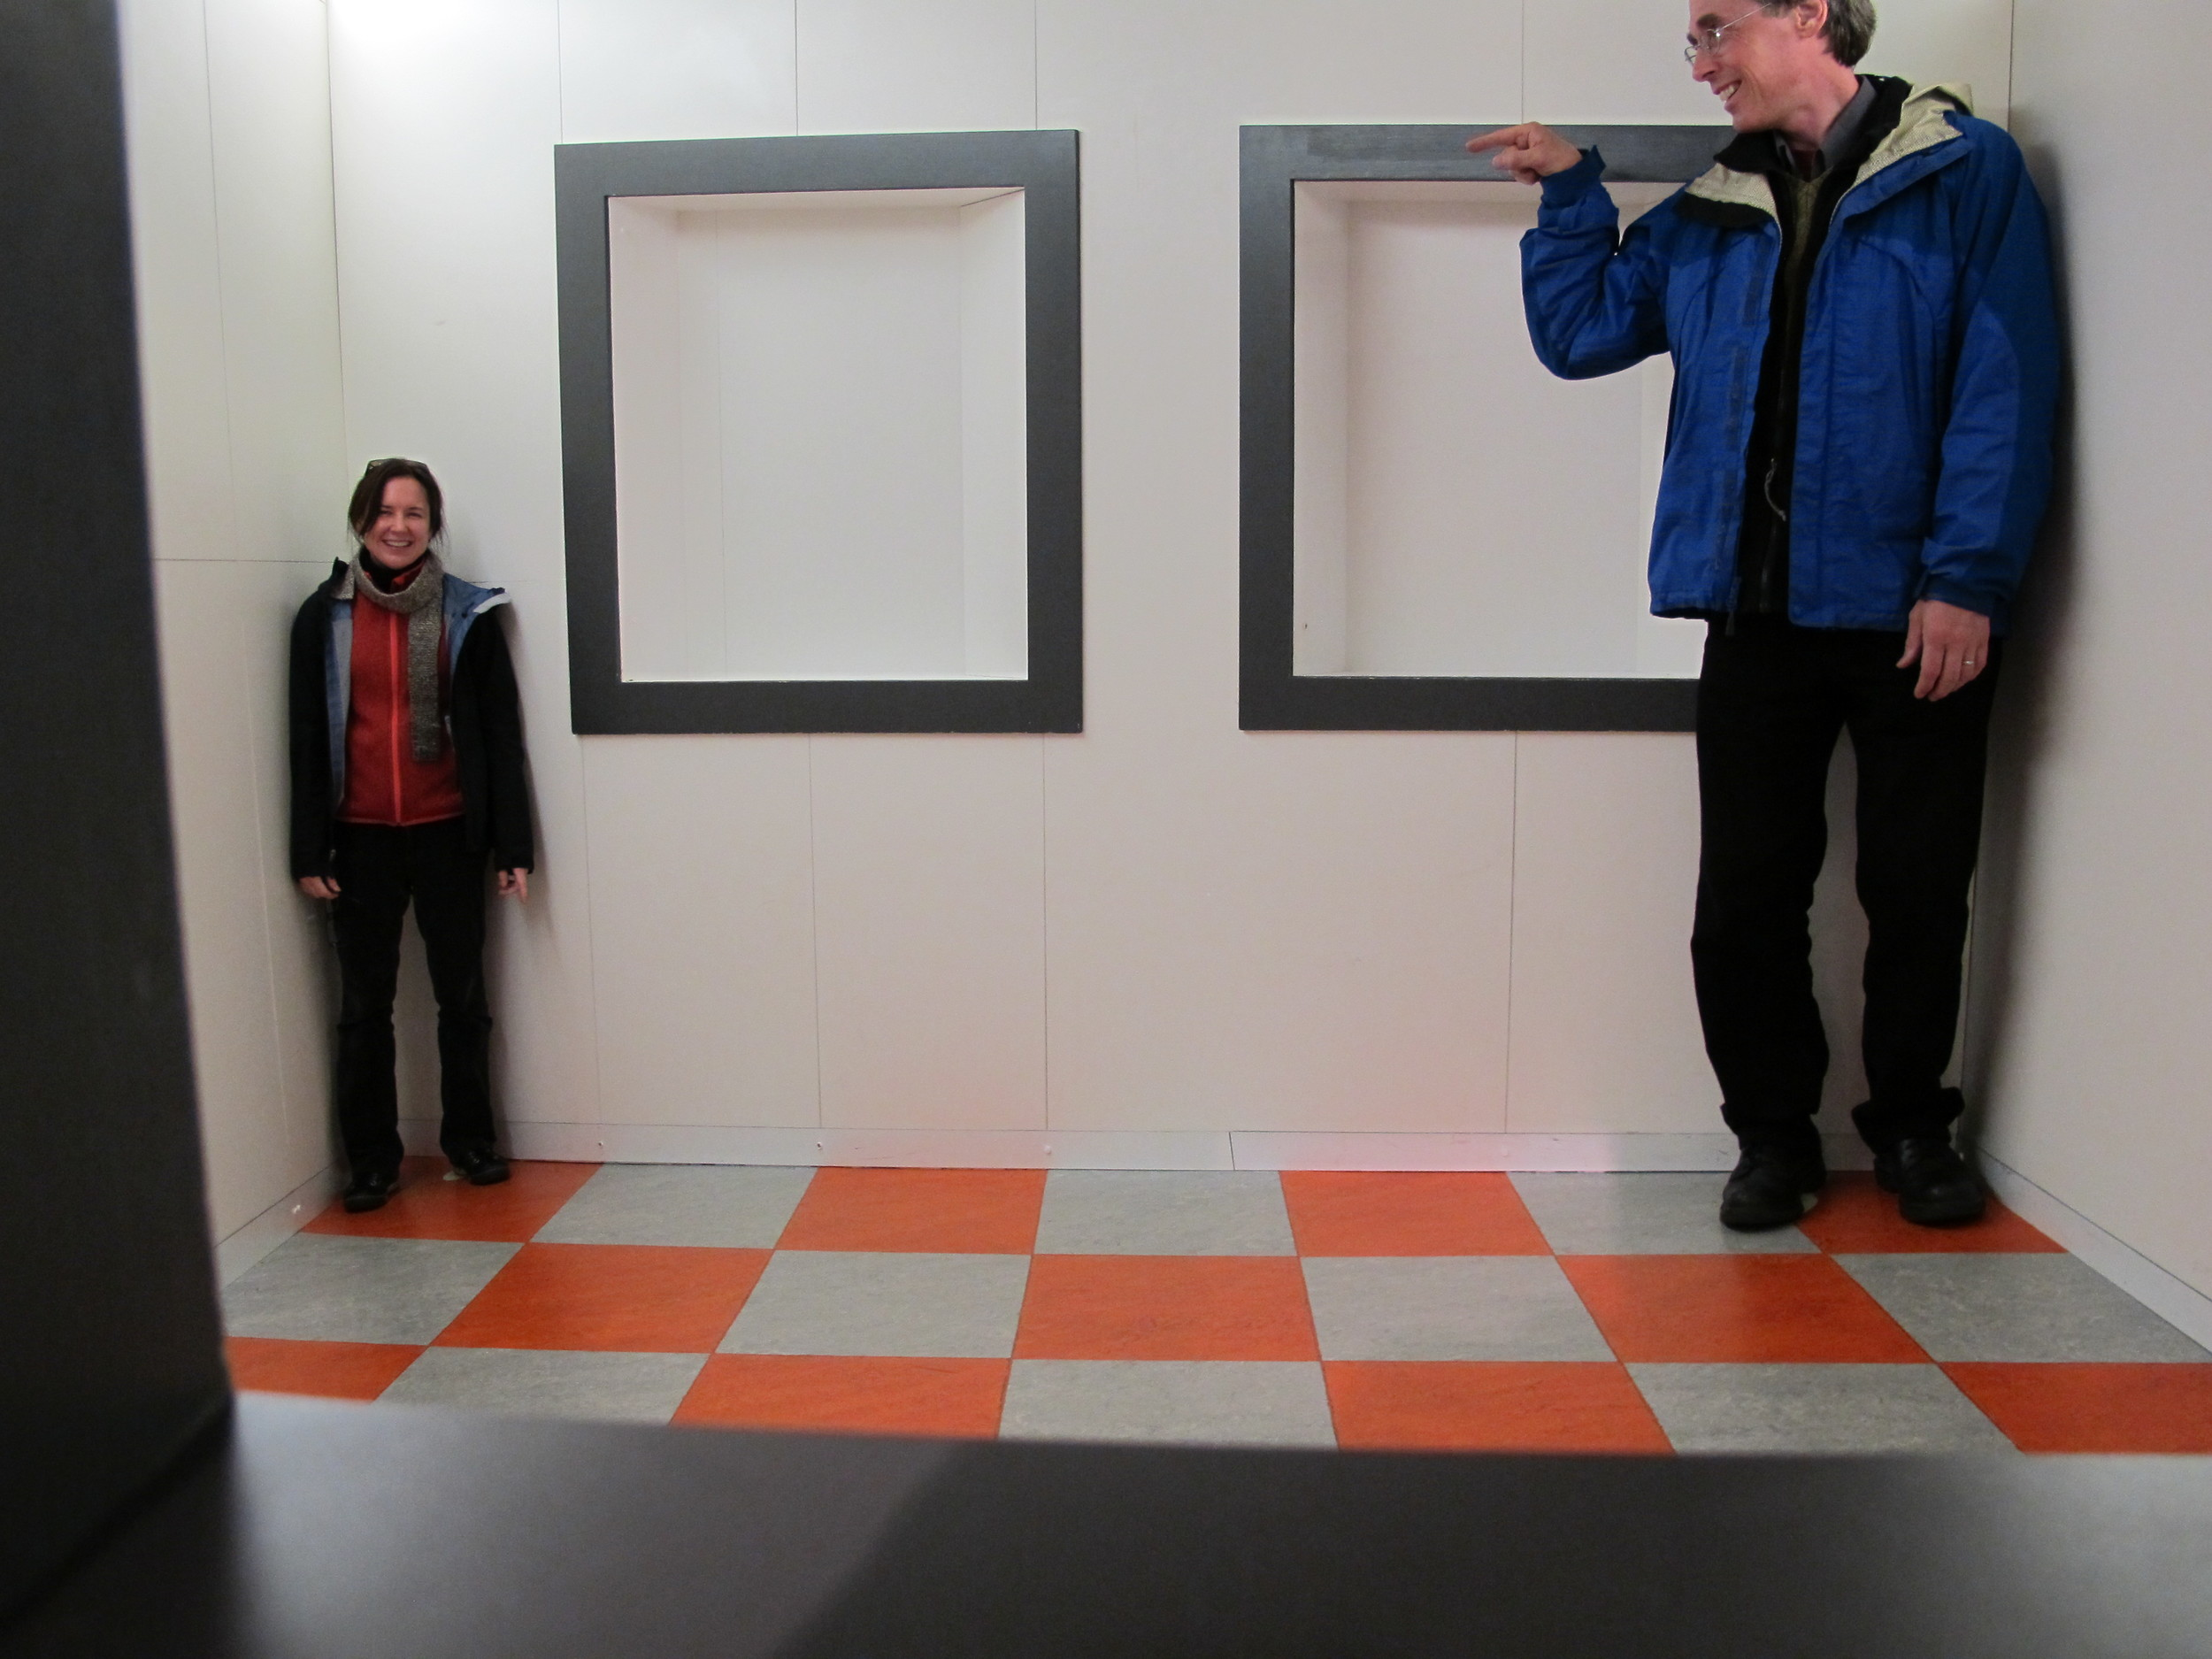 The incredible shrinking Pamelia? No, just an optical illusion created when the two of us stepped into an Ames room in Edinburgh's Camera Obscura museum. If we could just find enough space to build one of these rooms at The Naturalist's Notebook, we would.